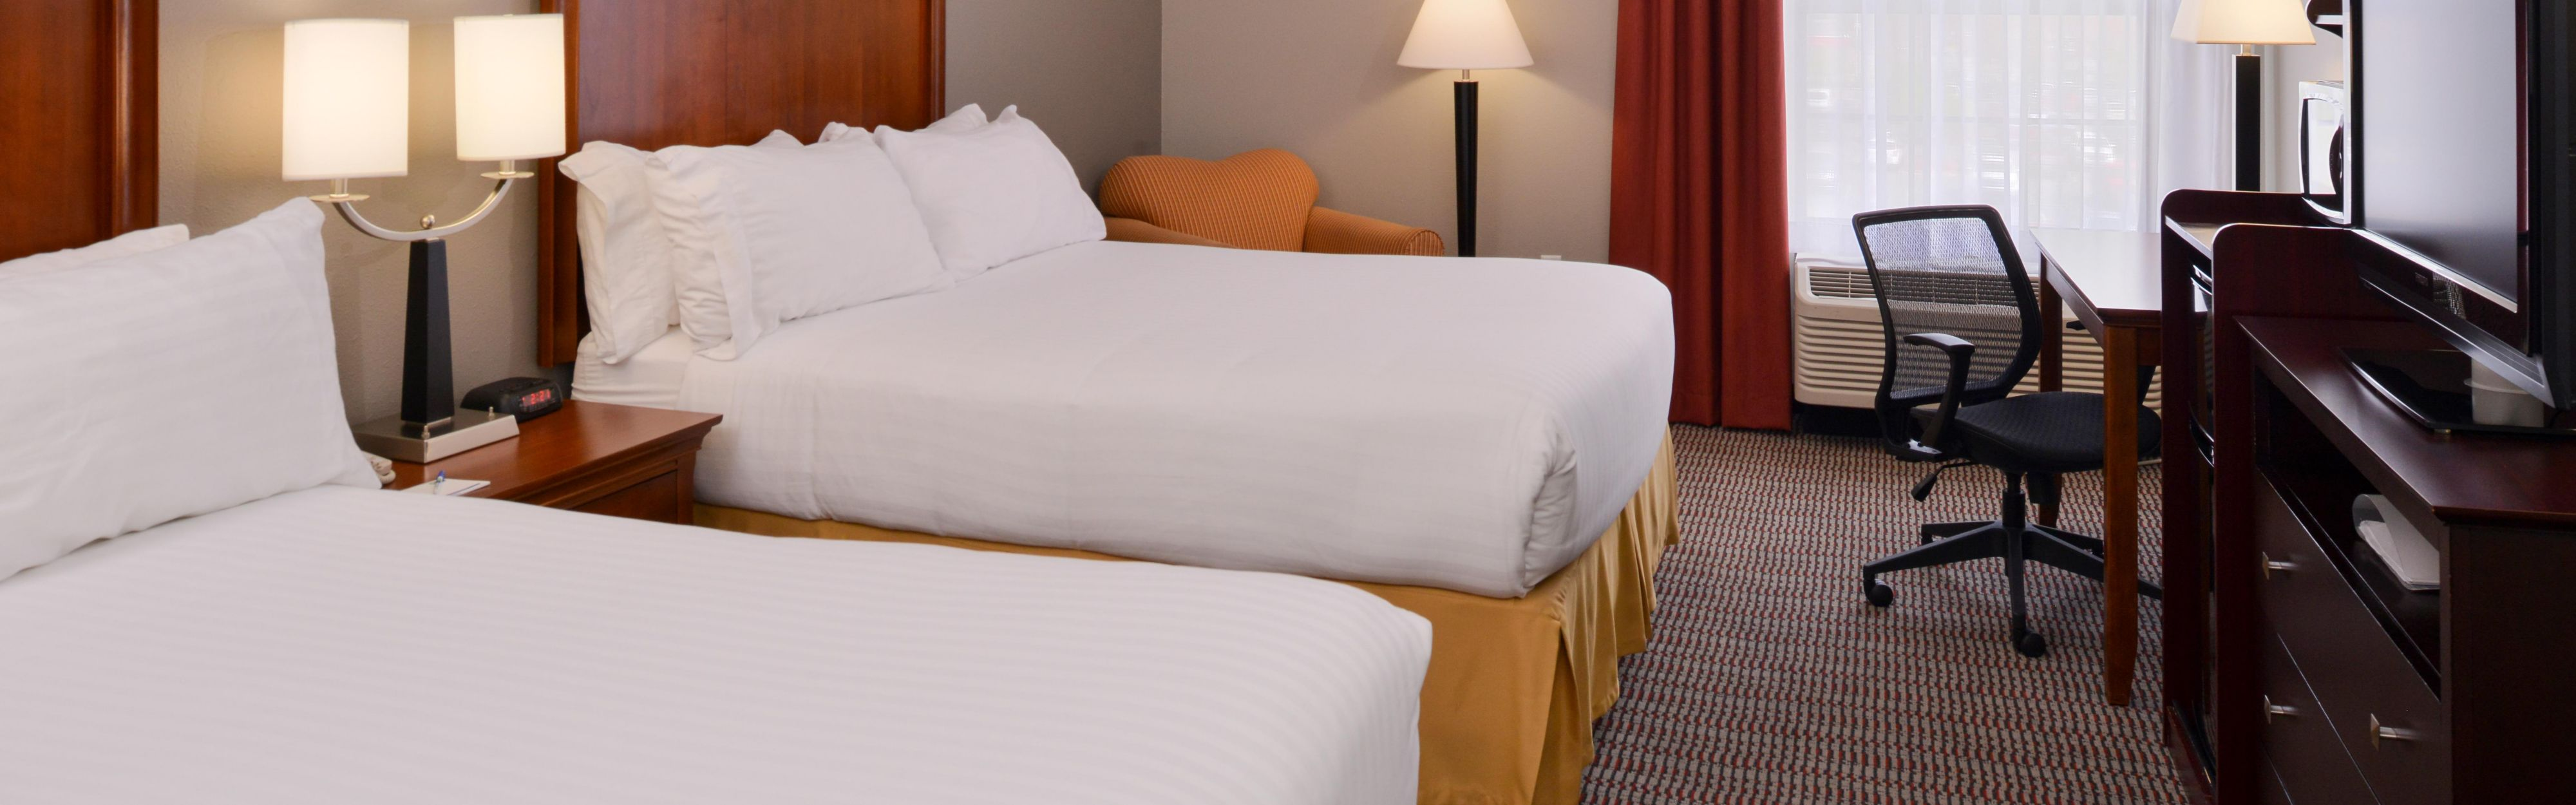 Holiday Inn Express & Suites North Little Rock image 1